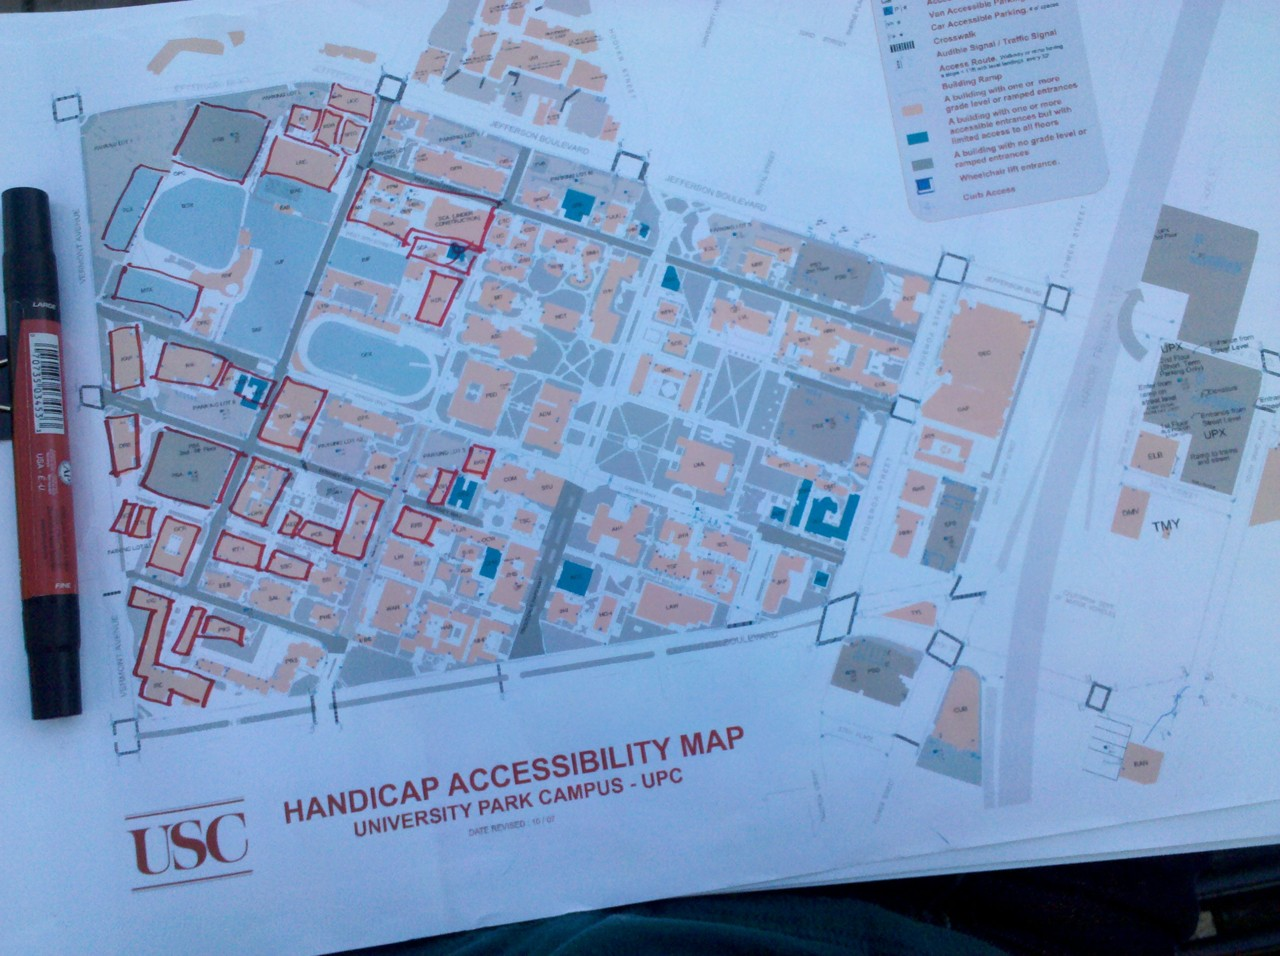 USC site visit | Day 02.  I haven't made a dent in covering this map. On another note, I'm going to know this campus well enough to hide a body.